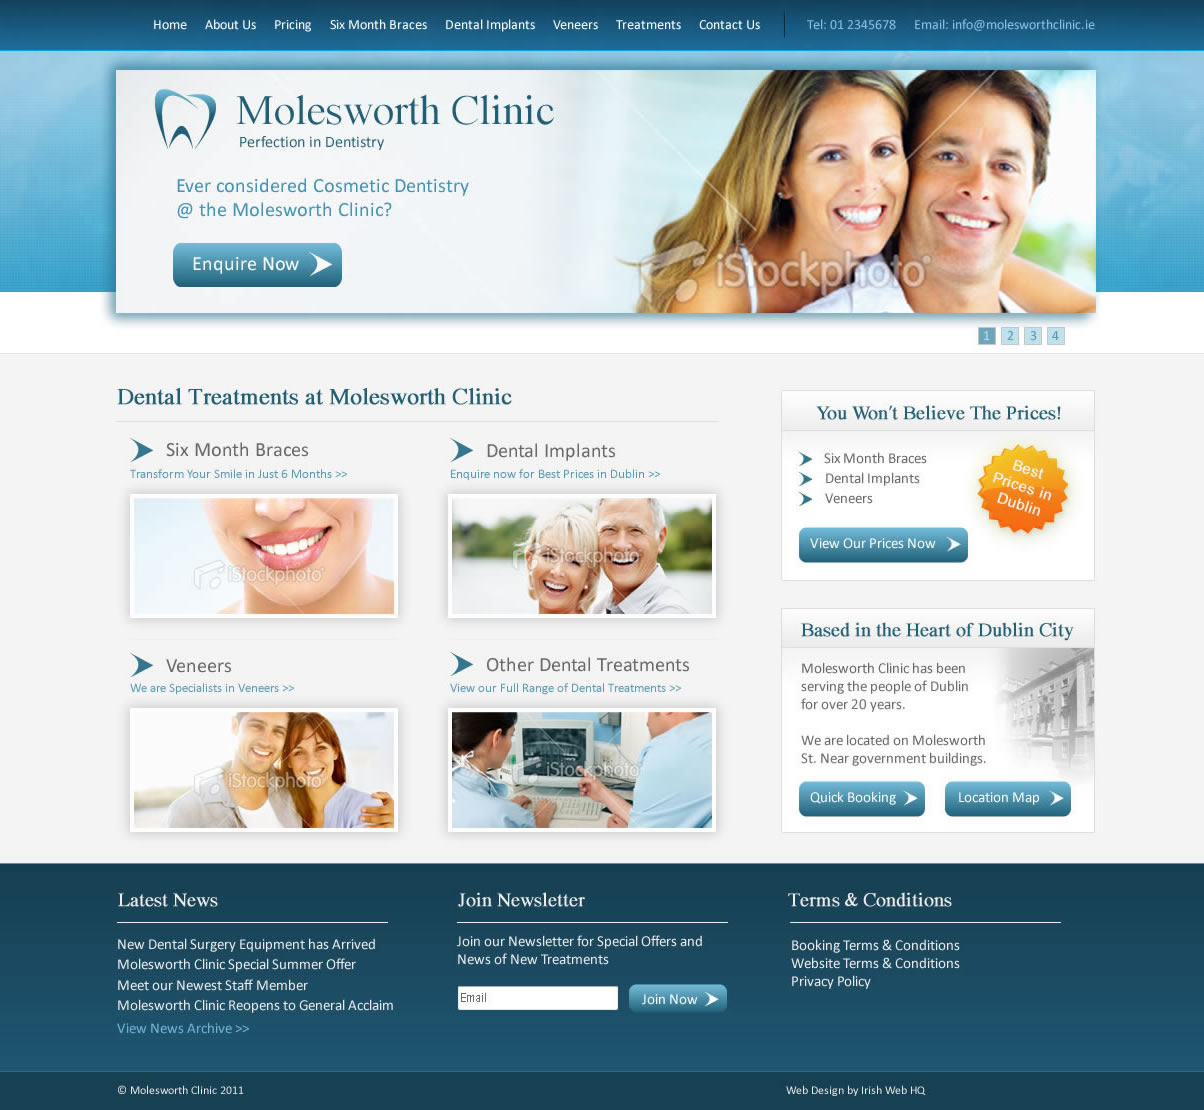 Web Design Ireland - Molesworth Clinic Dublin